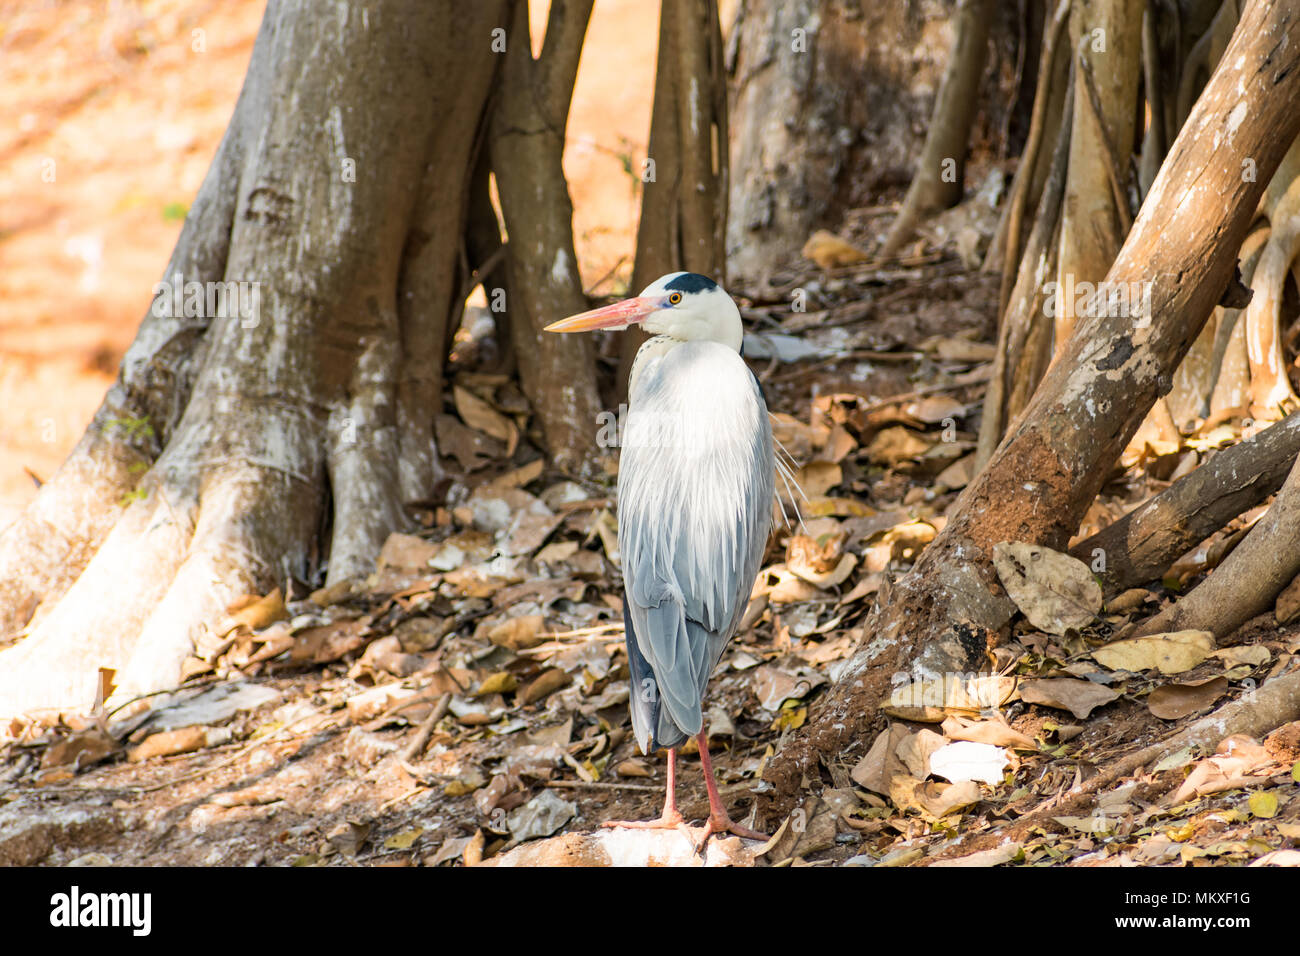 White egret bird at zoo looking very good at sunny day. Stock Photo